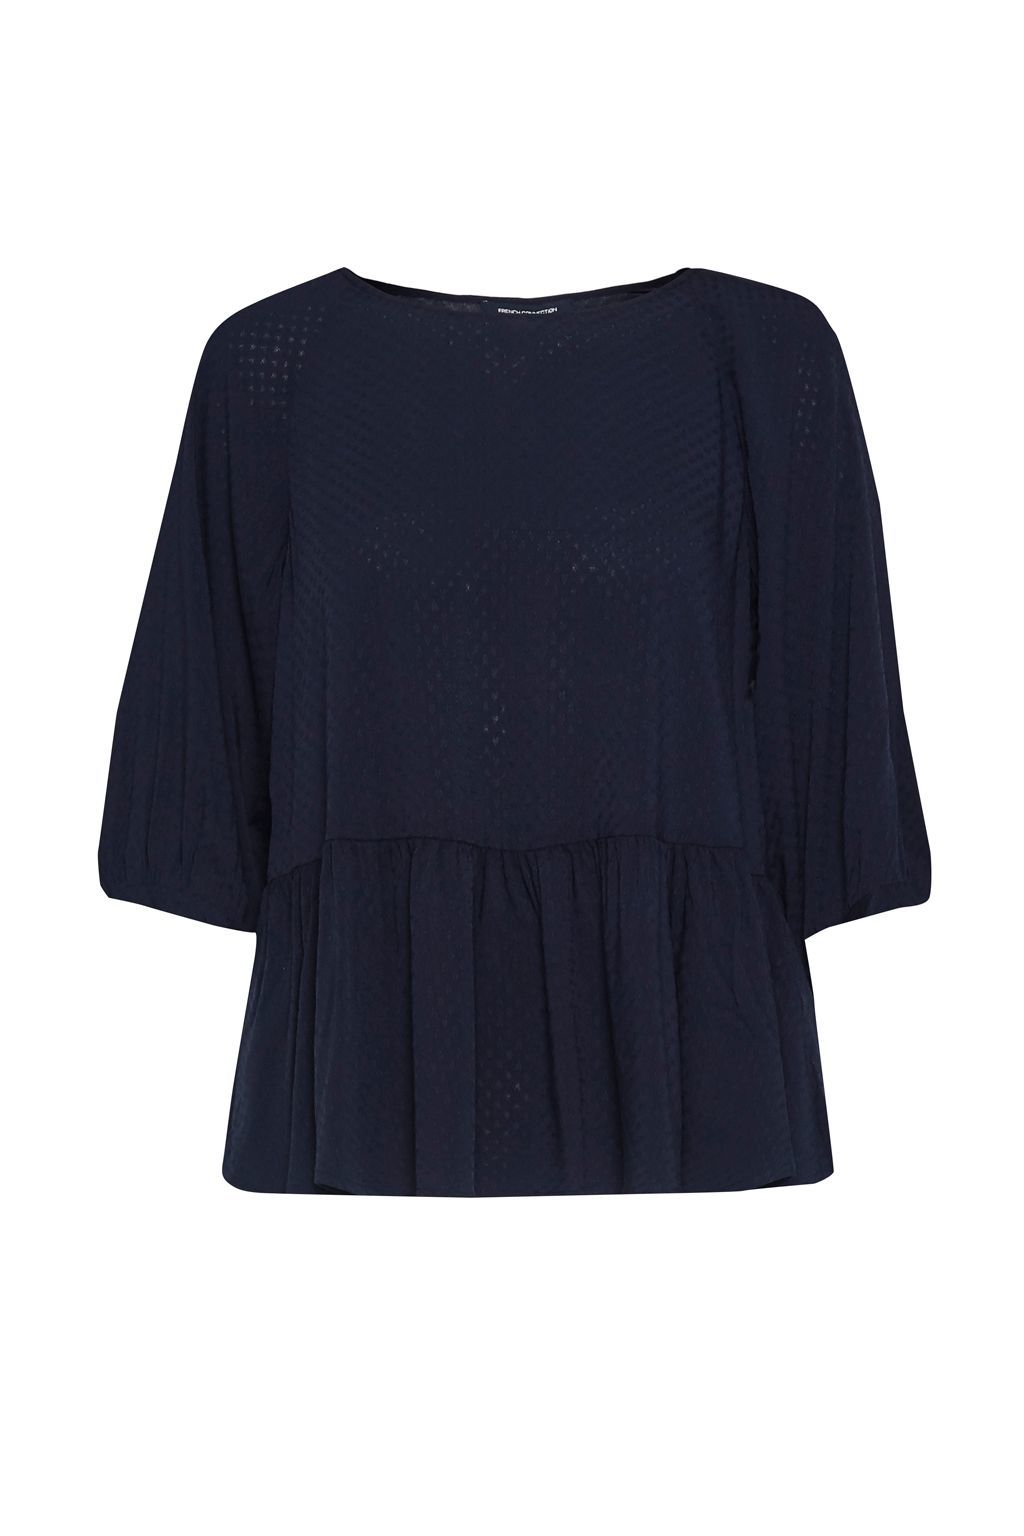 Empire Dot Flared Hem Top, Blue - neckline: round neck; pattern: plain; predominant colour: navy; occasions: casual; length: standard; style: top; fibres: viscose/rayon - 100%; fit: body skimming; sleeve length: 3/4 length; sleeve style: standard; pattern type: fabric; texture group: other - light to midweight; wardrobe: basic; season: a/w 2016